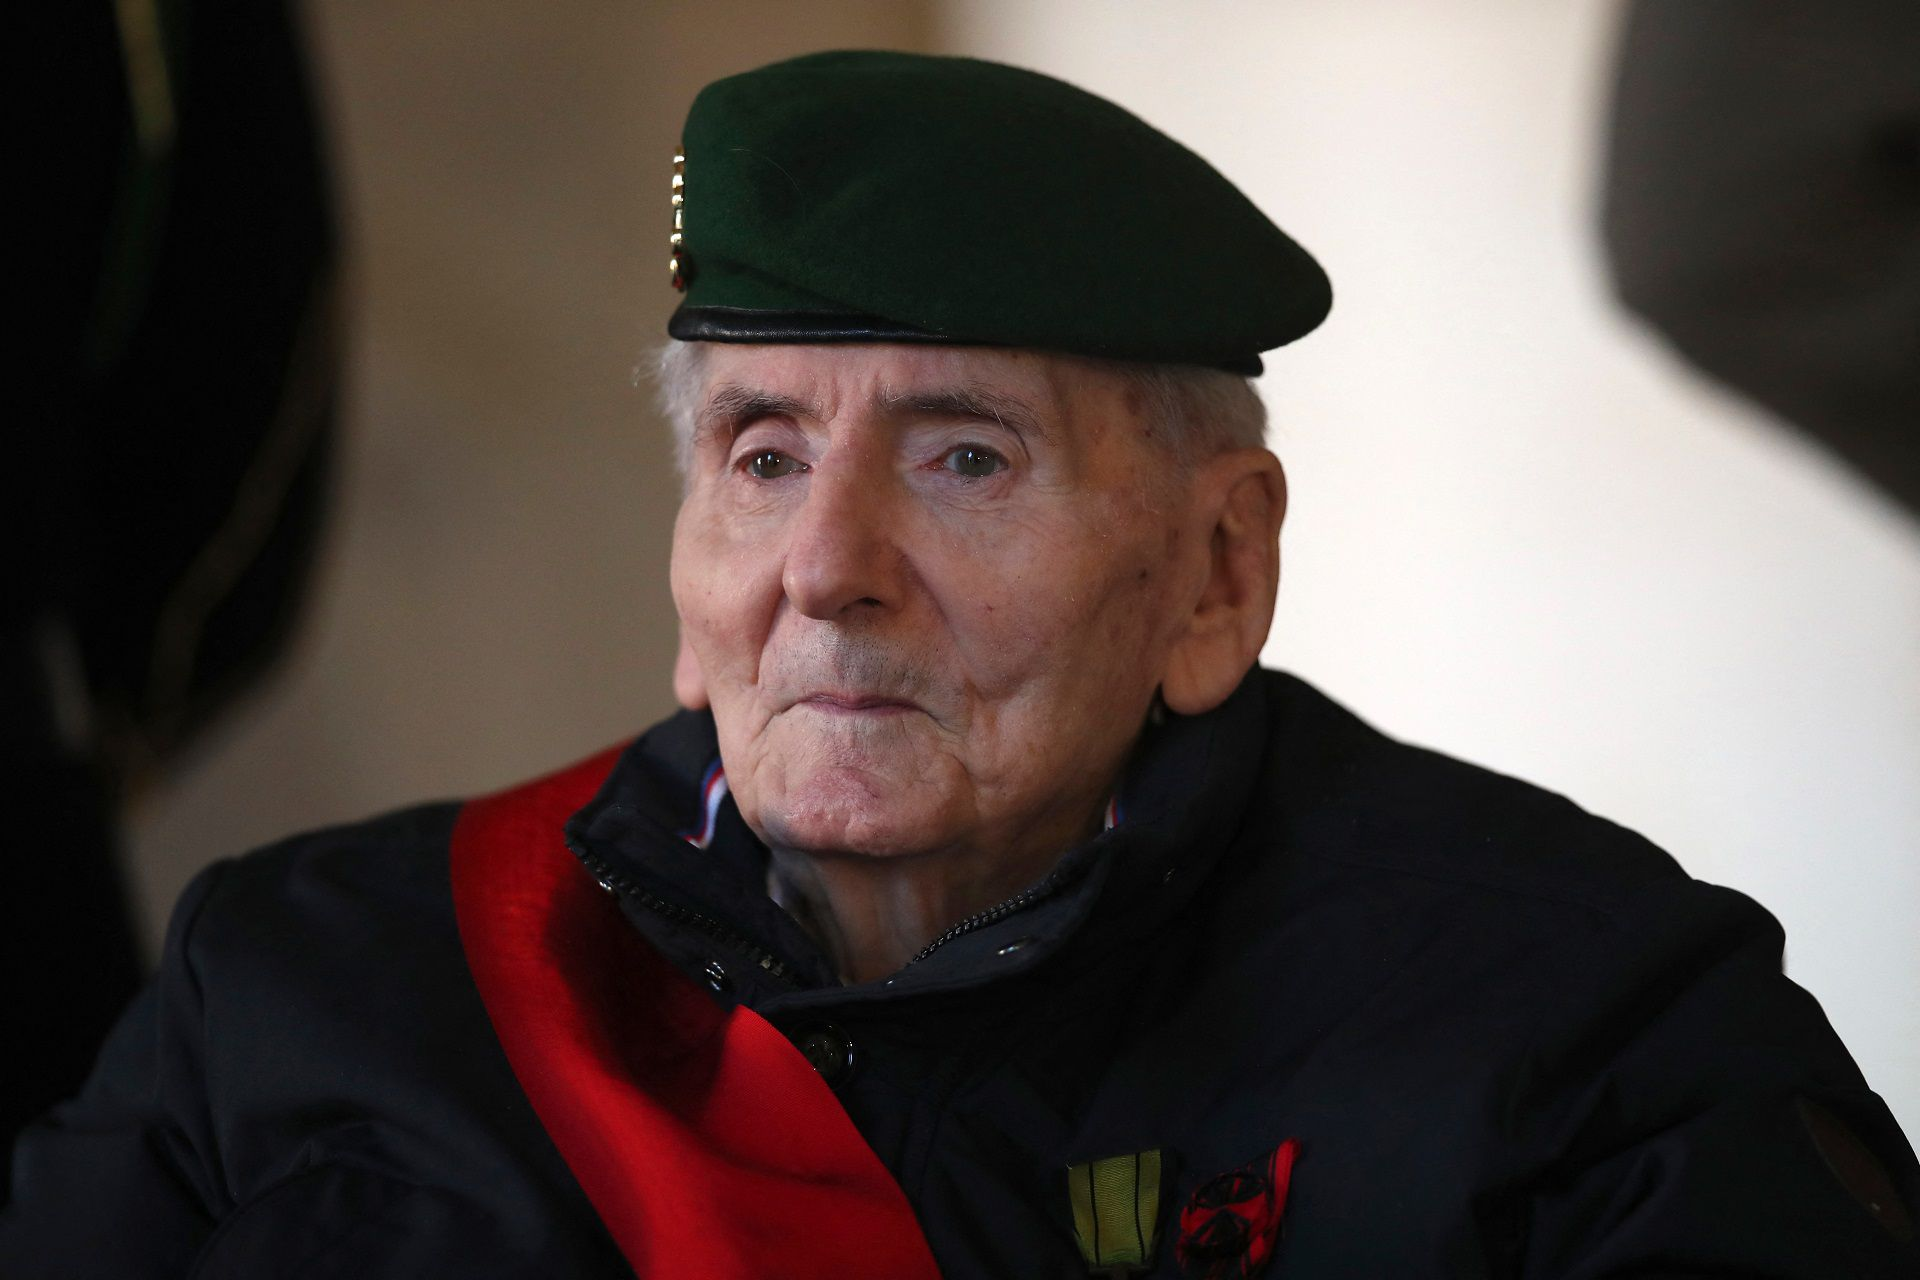 """(FILES) In this file photo taken on November 26, 2020 Hubert Germain, the last French WWII resistant of the """"Compagnon de la Liberation"""" still living, arrives to attend an honorary funeral ceremony for World War II resistant Daniel Cordier at the Hotel des Invalides in Paris. - Hubert Germain, who was the last surviving Liberation companion, died at the age of 101, French Defense Minister announced on October 12, 2021. (Photo by Michel Euler / POOL / AFP)"""